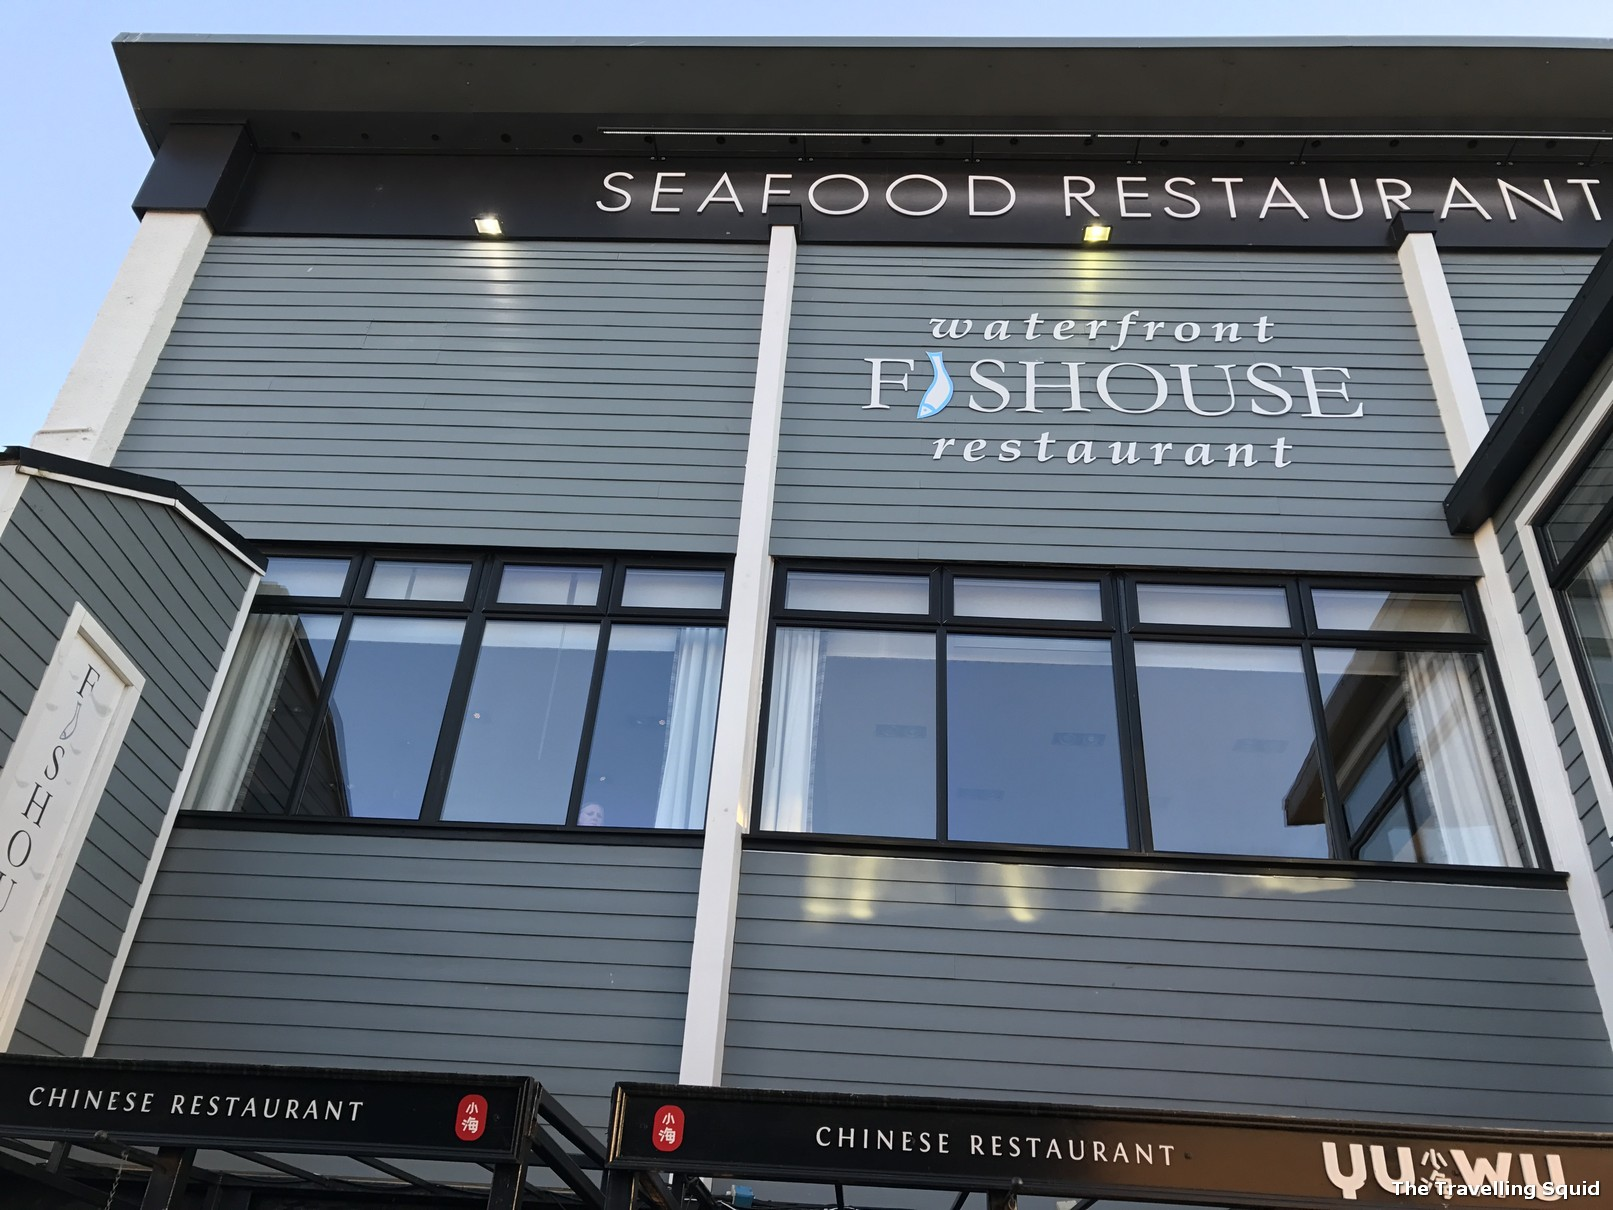 waterfront fishouse restaurant oban seafood